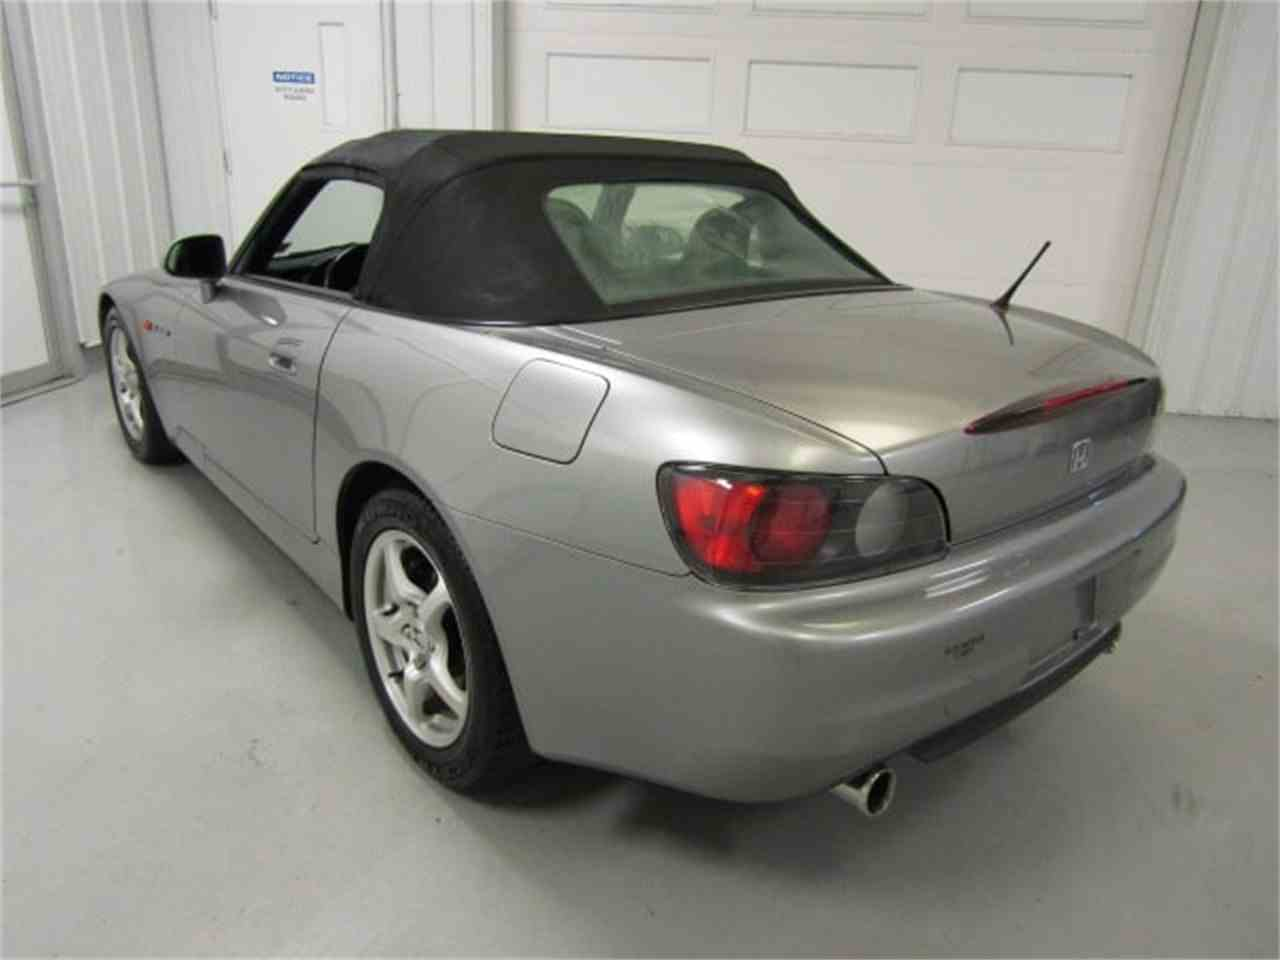 Large Picture of '01 Honda S2000 located in Christiansburg Virginia - $19,900.00 Offered by Duncan Imports & Classic Cars - LI1R